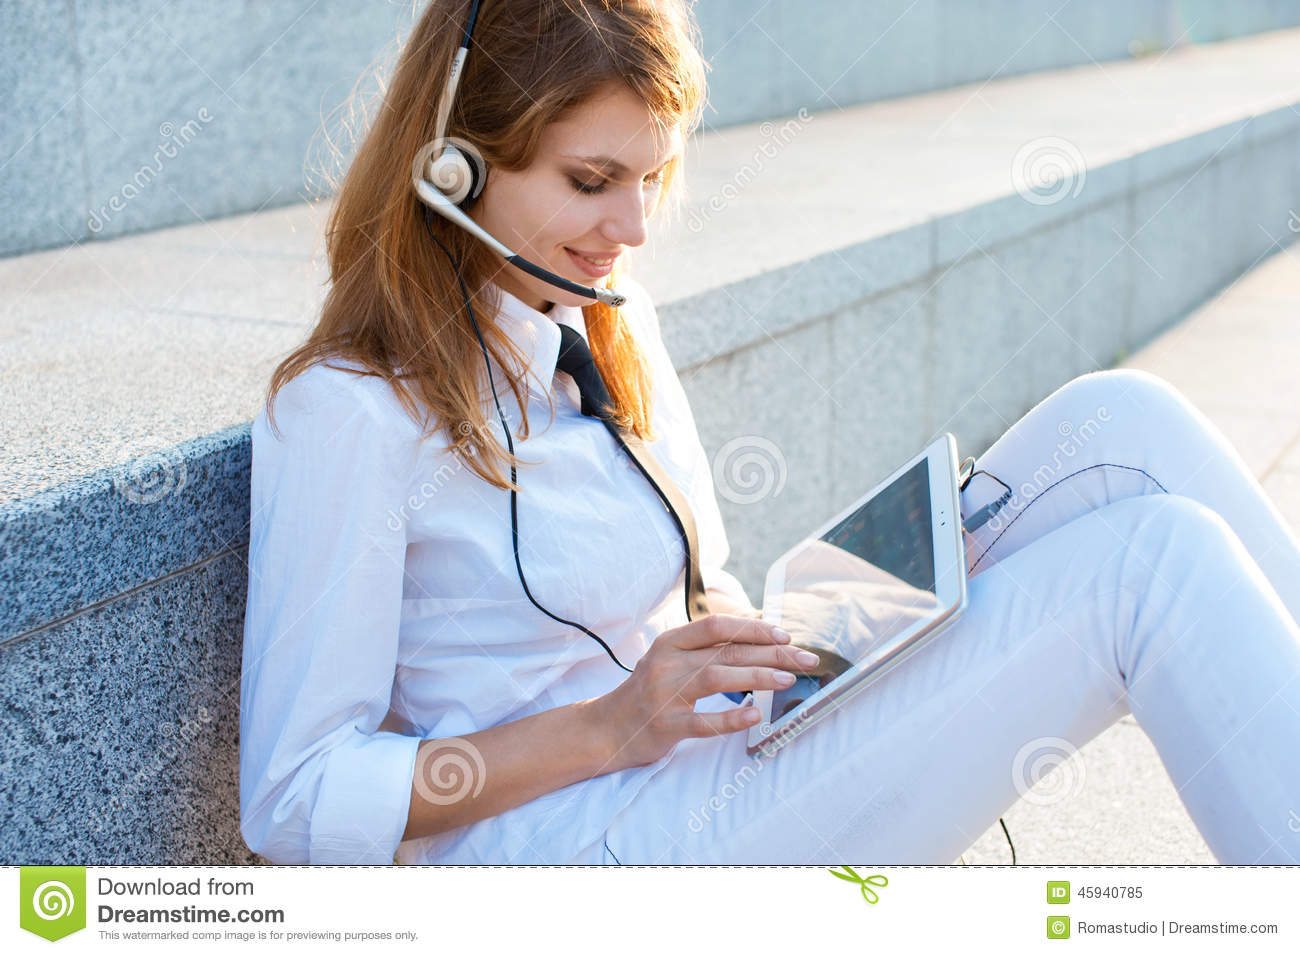 Smiling Pretty Business Woman With Headset Stock Photo ...